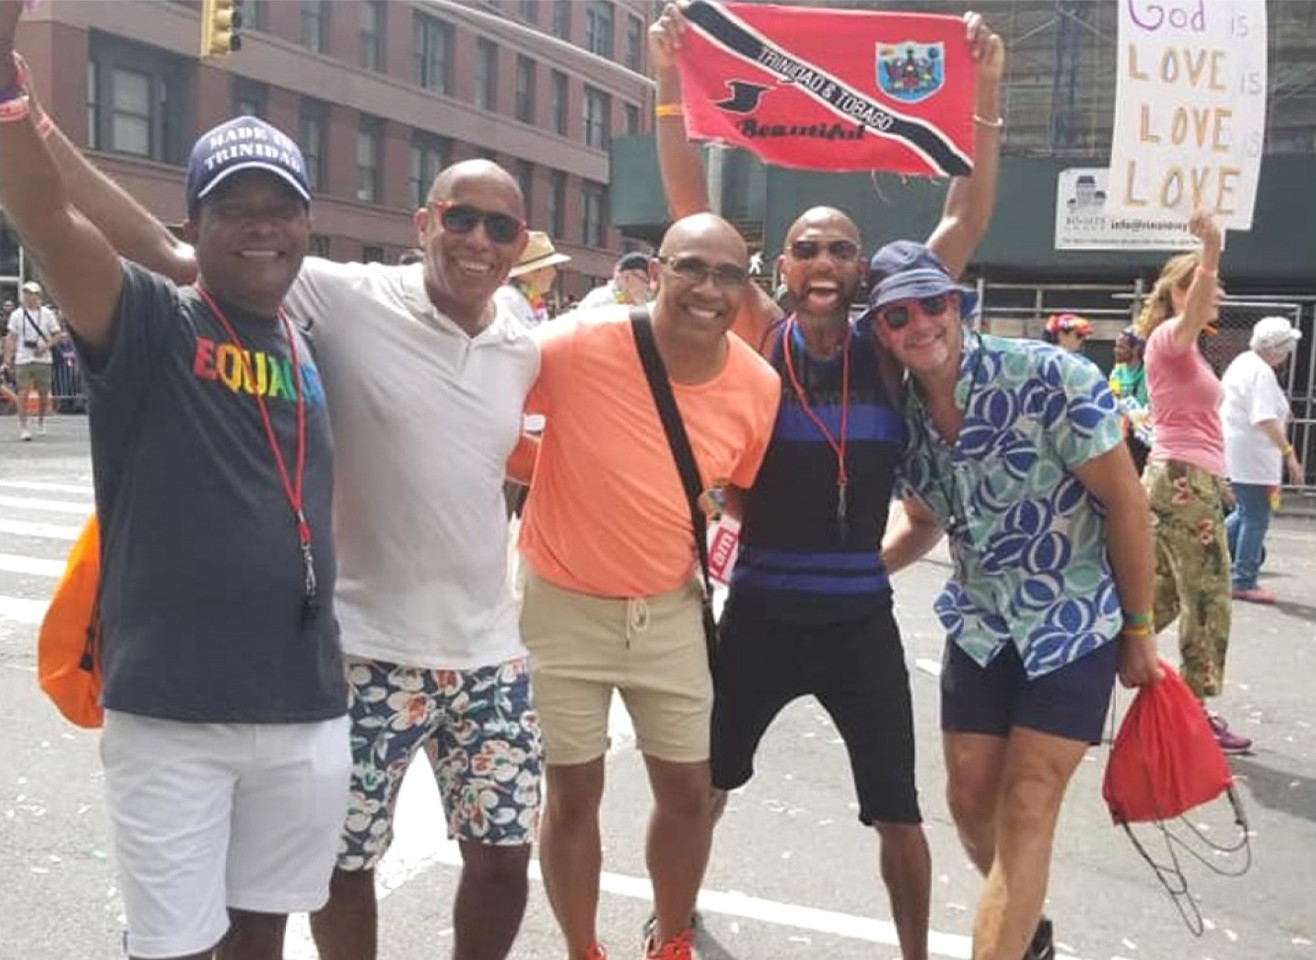 Marching with CEP in the NYC Pride March, 2018